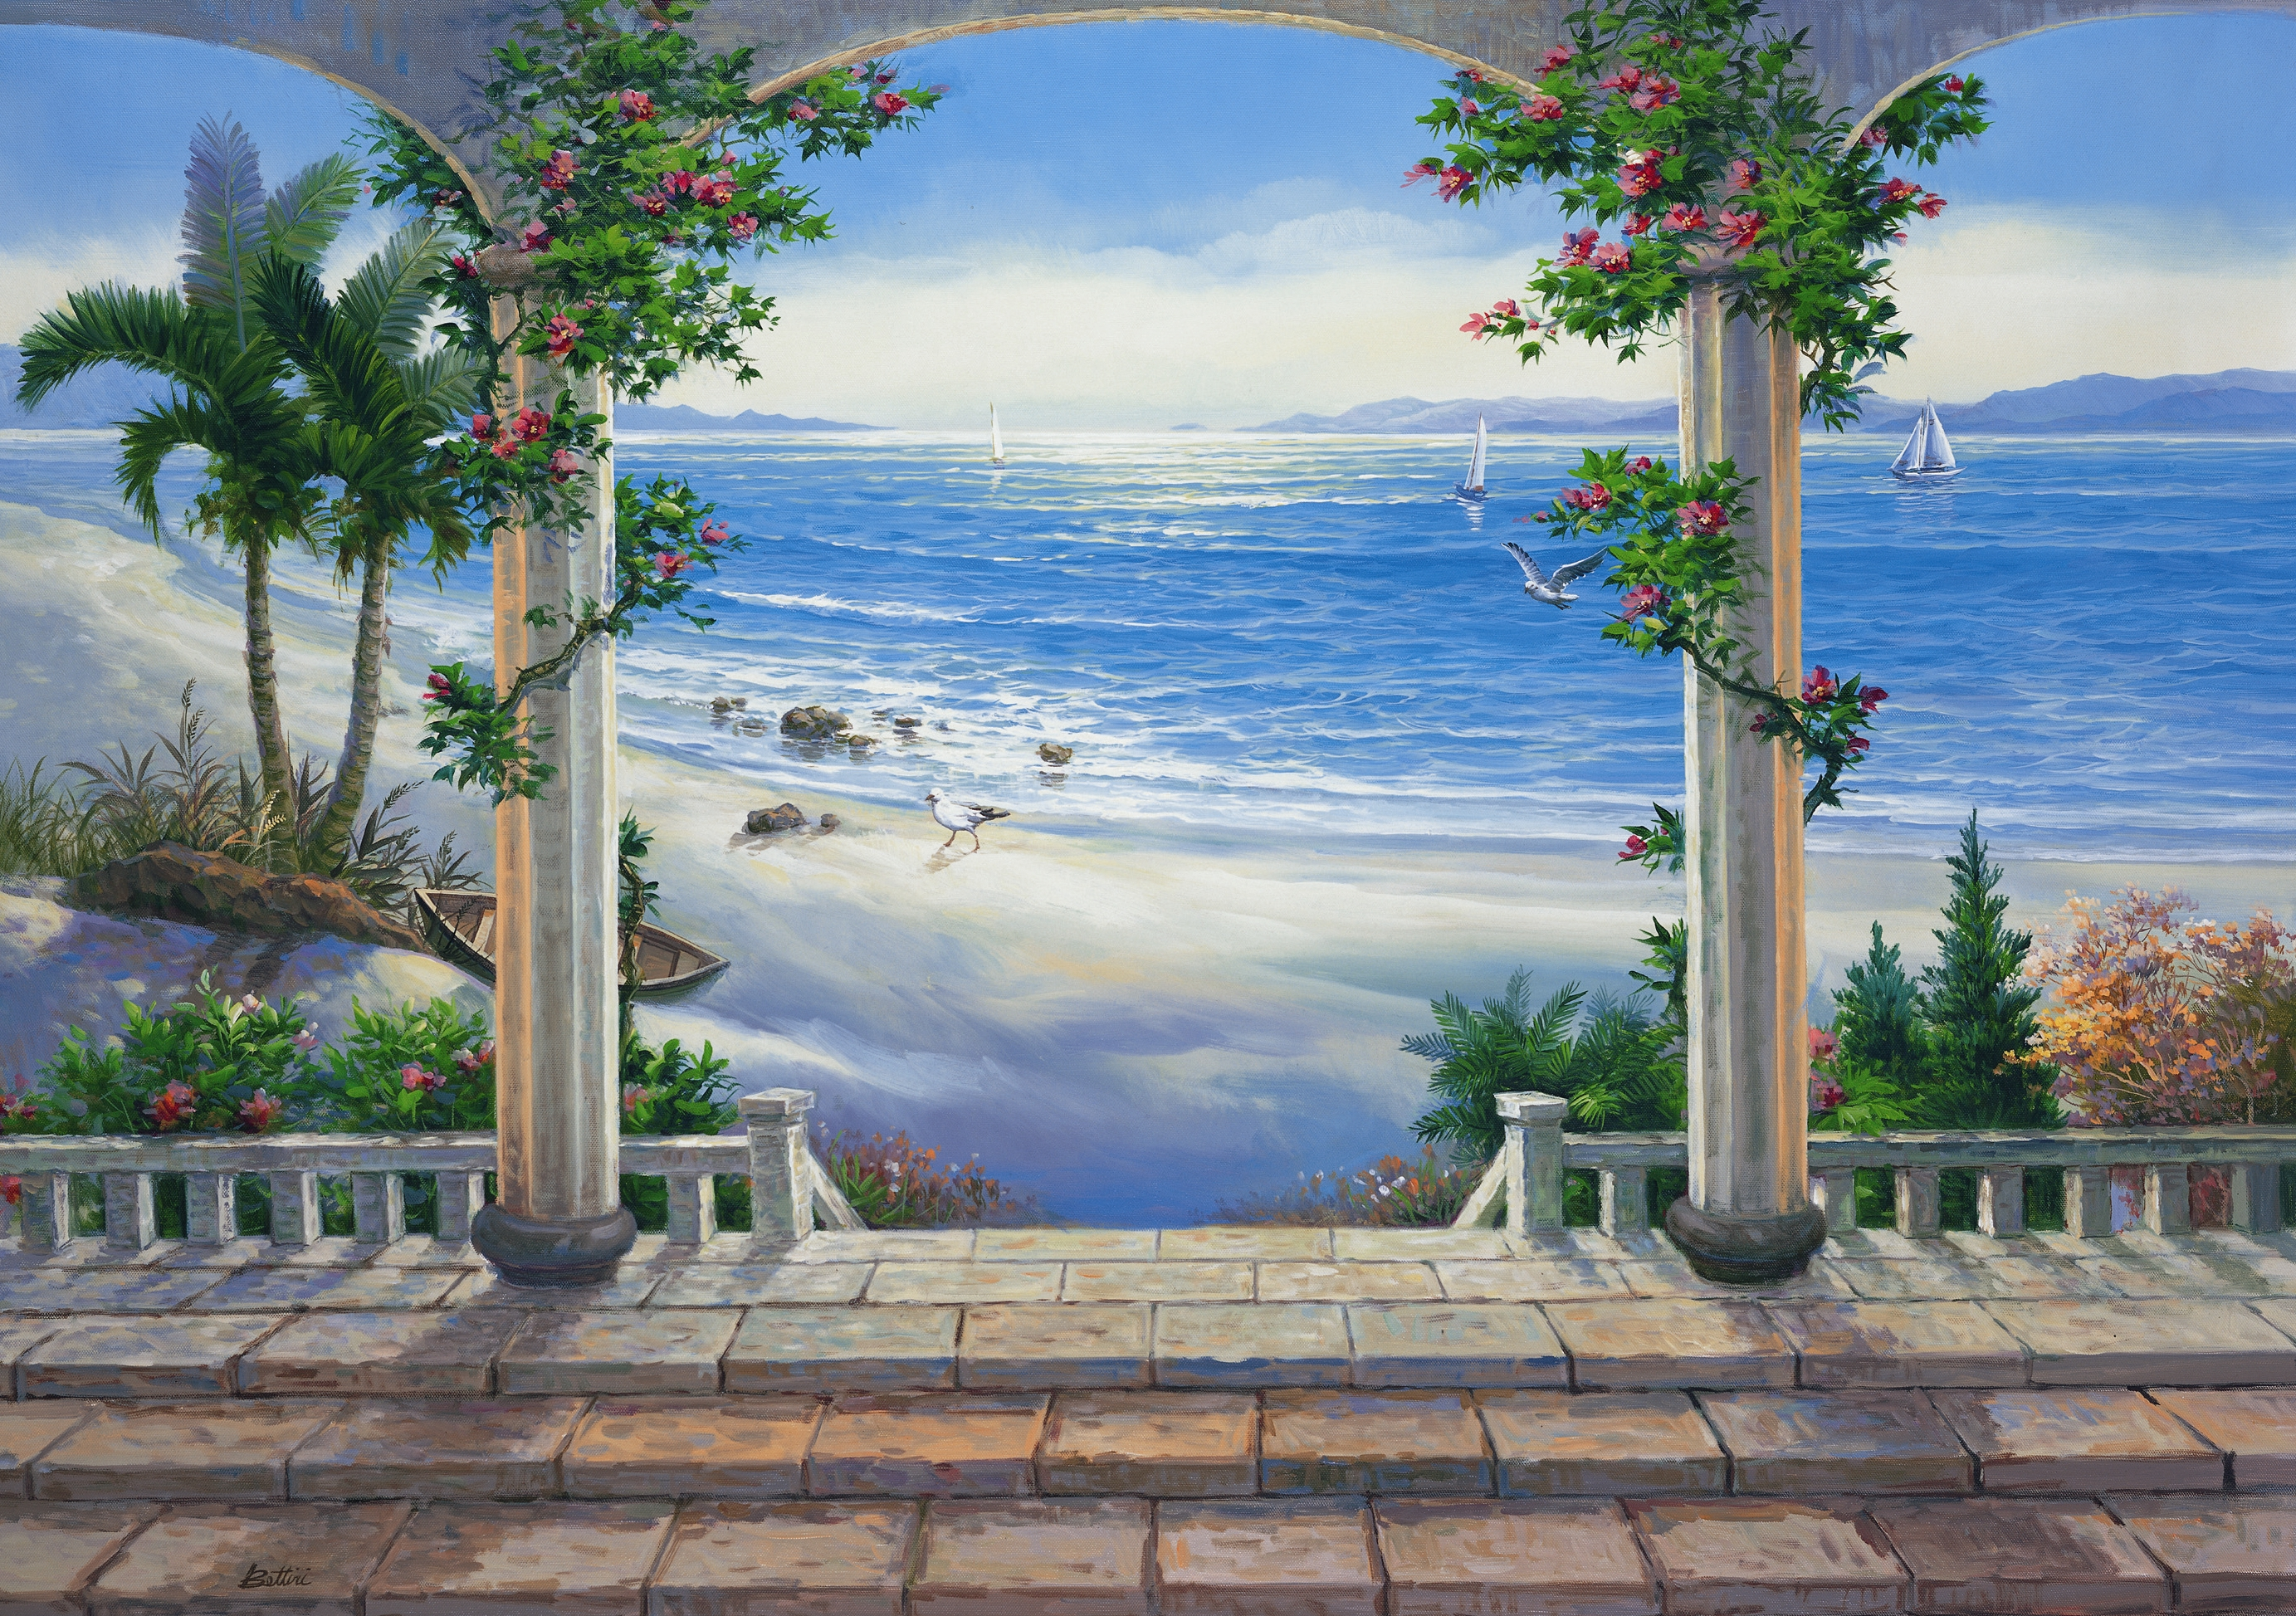 Ocean view wall mural pr1813 for Beach mural for wall